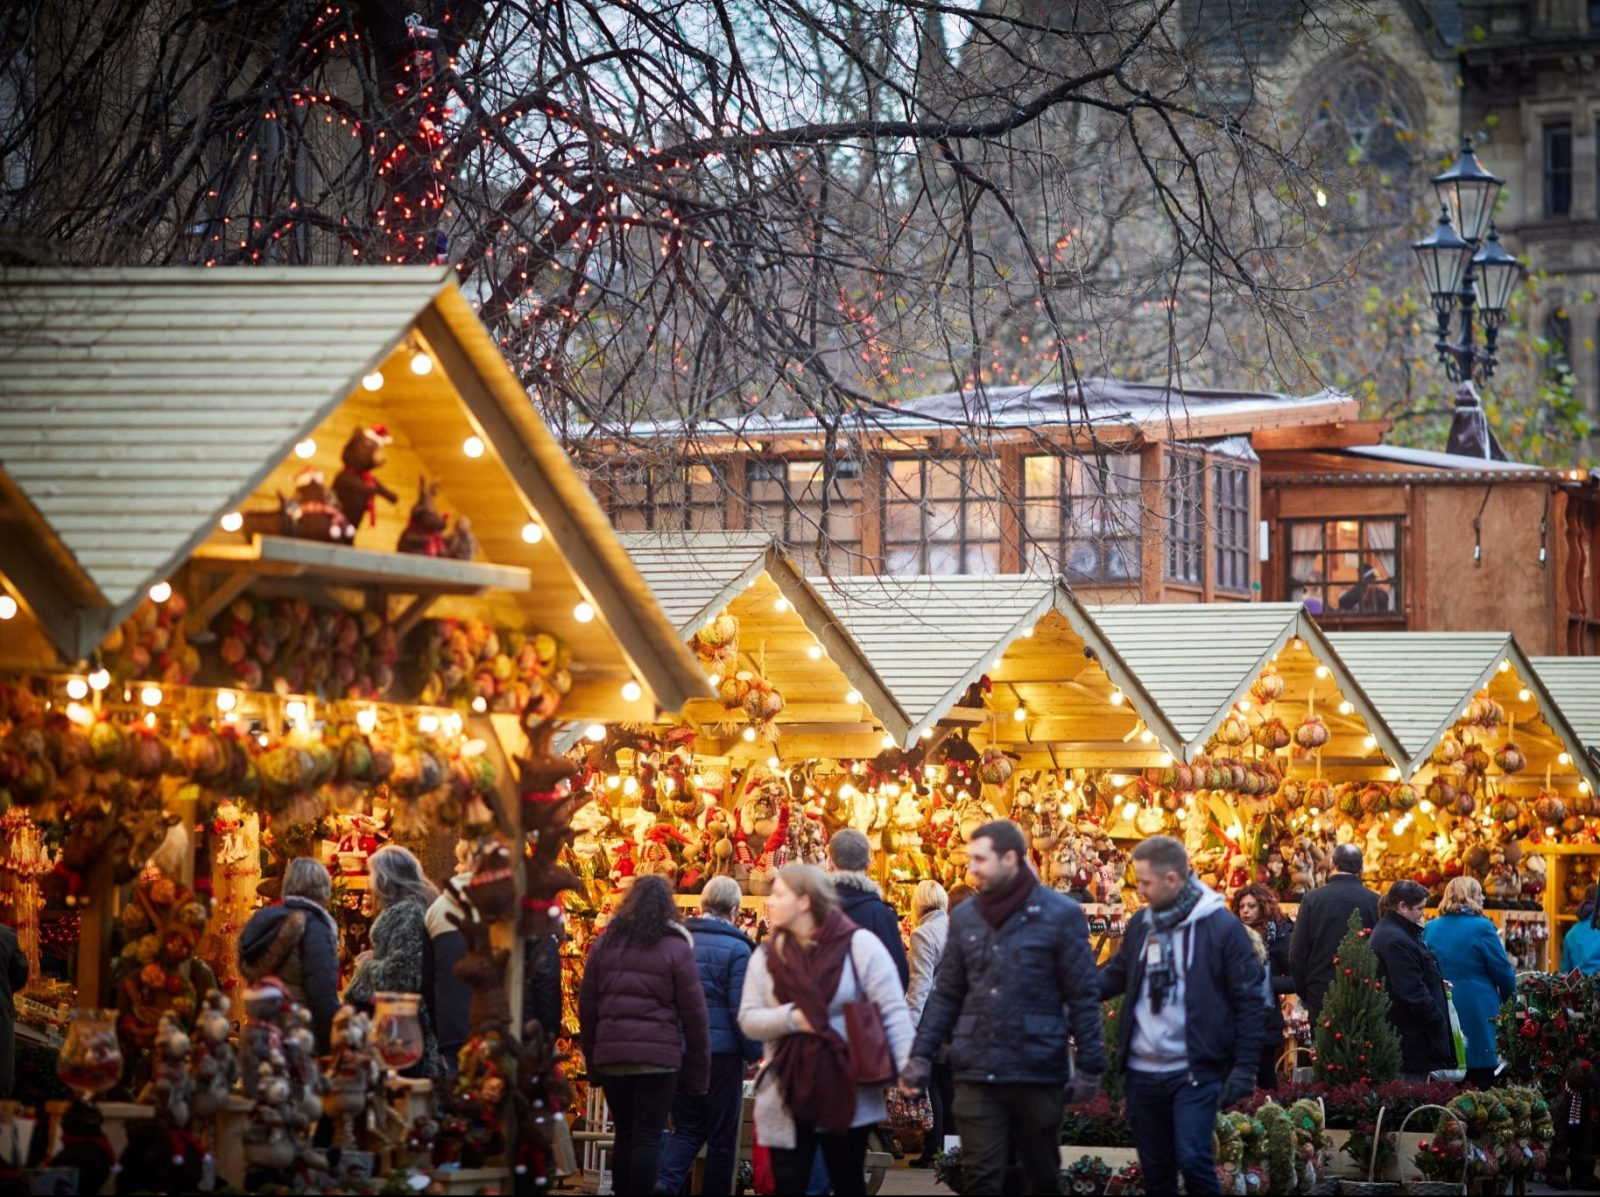 The main hub for this year's Manchester Christmas Markets will be moved to Piccadilly Gardens, The Manc